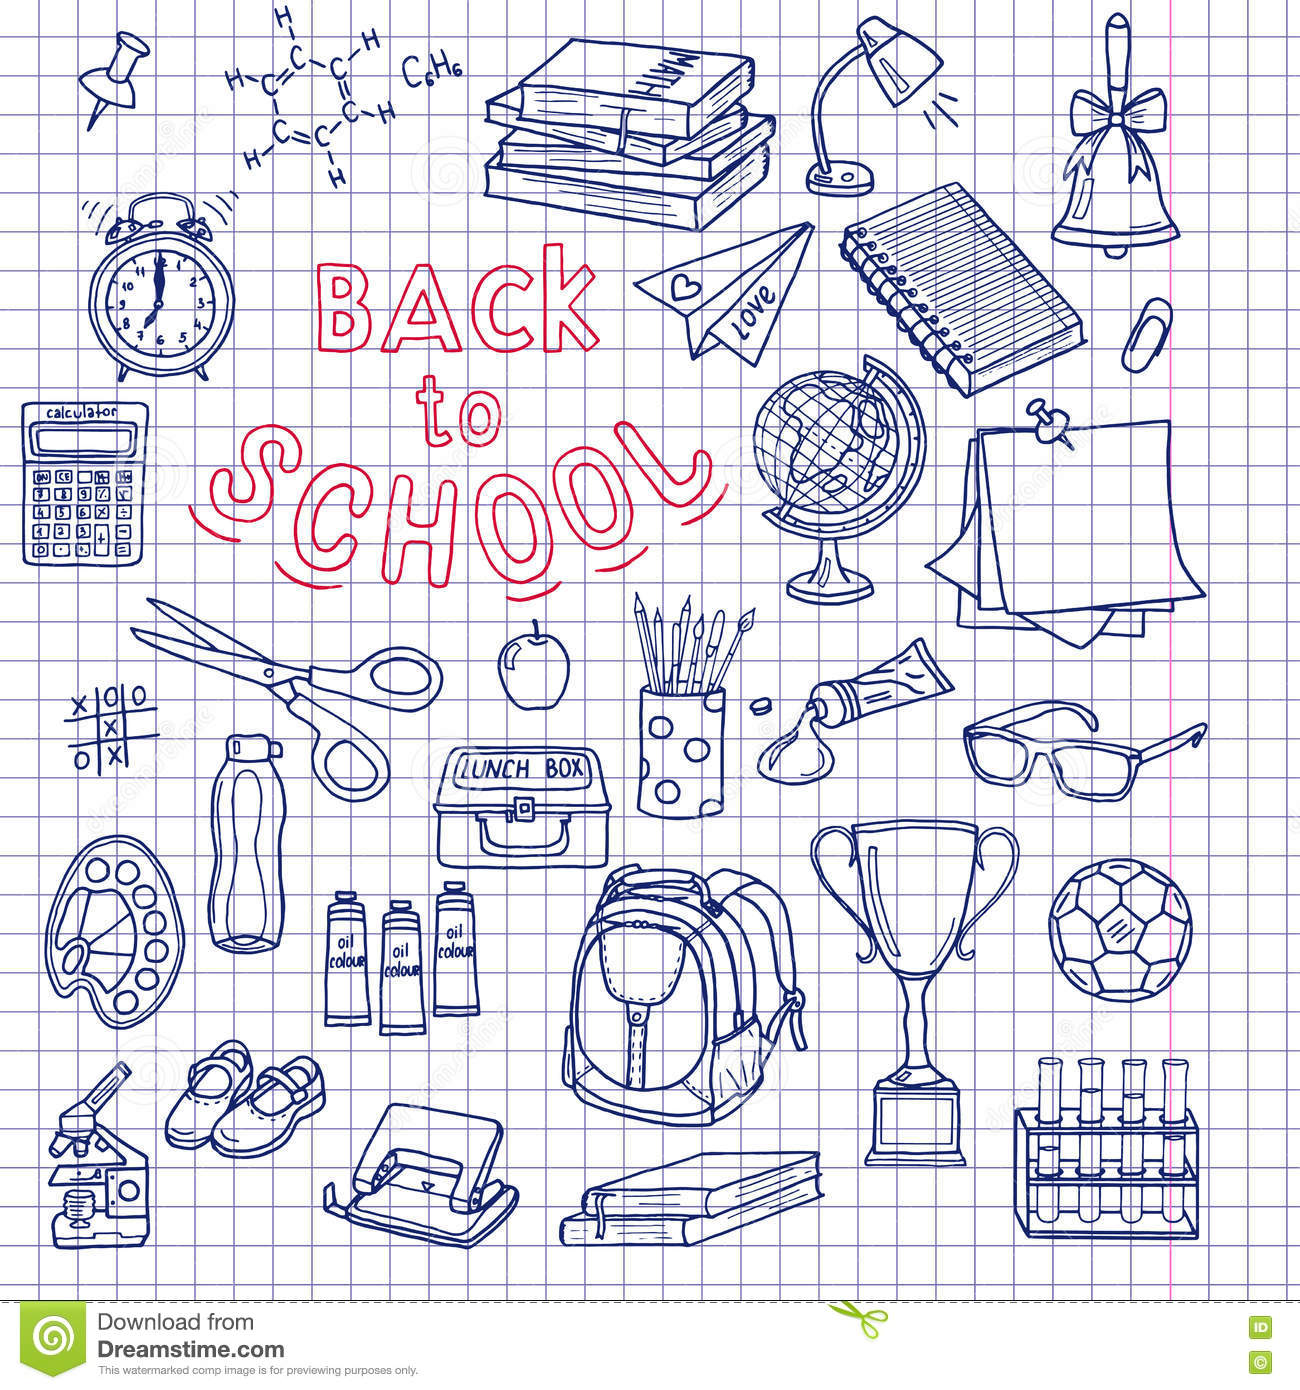 Back to School supplies sketchy notebook doodles with lettering